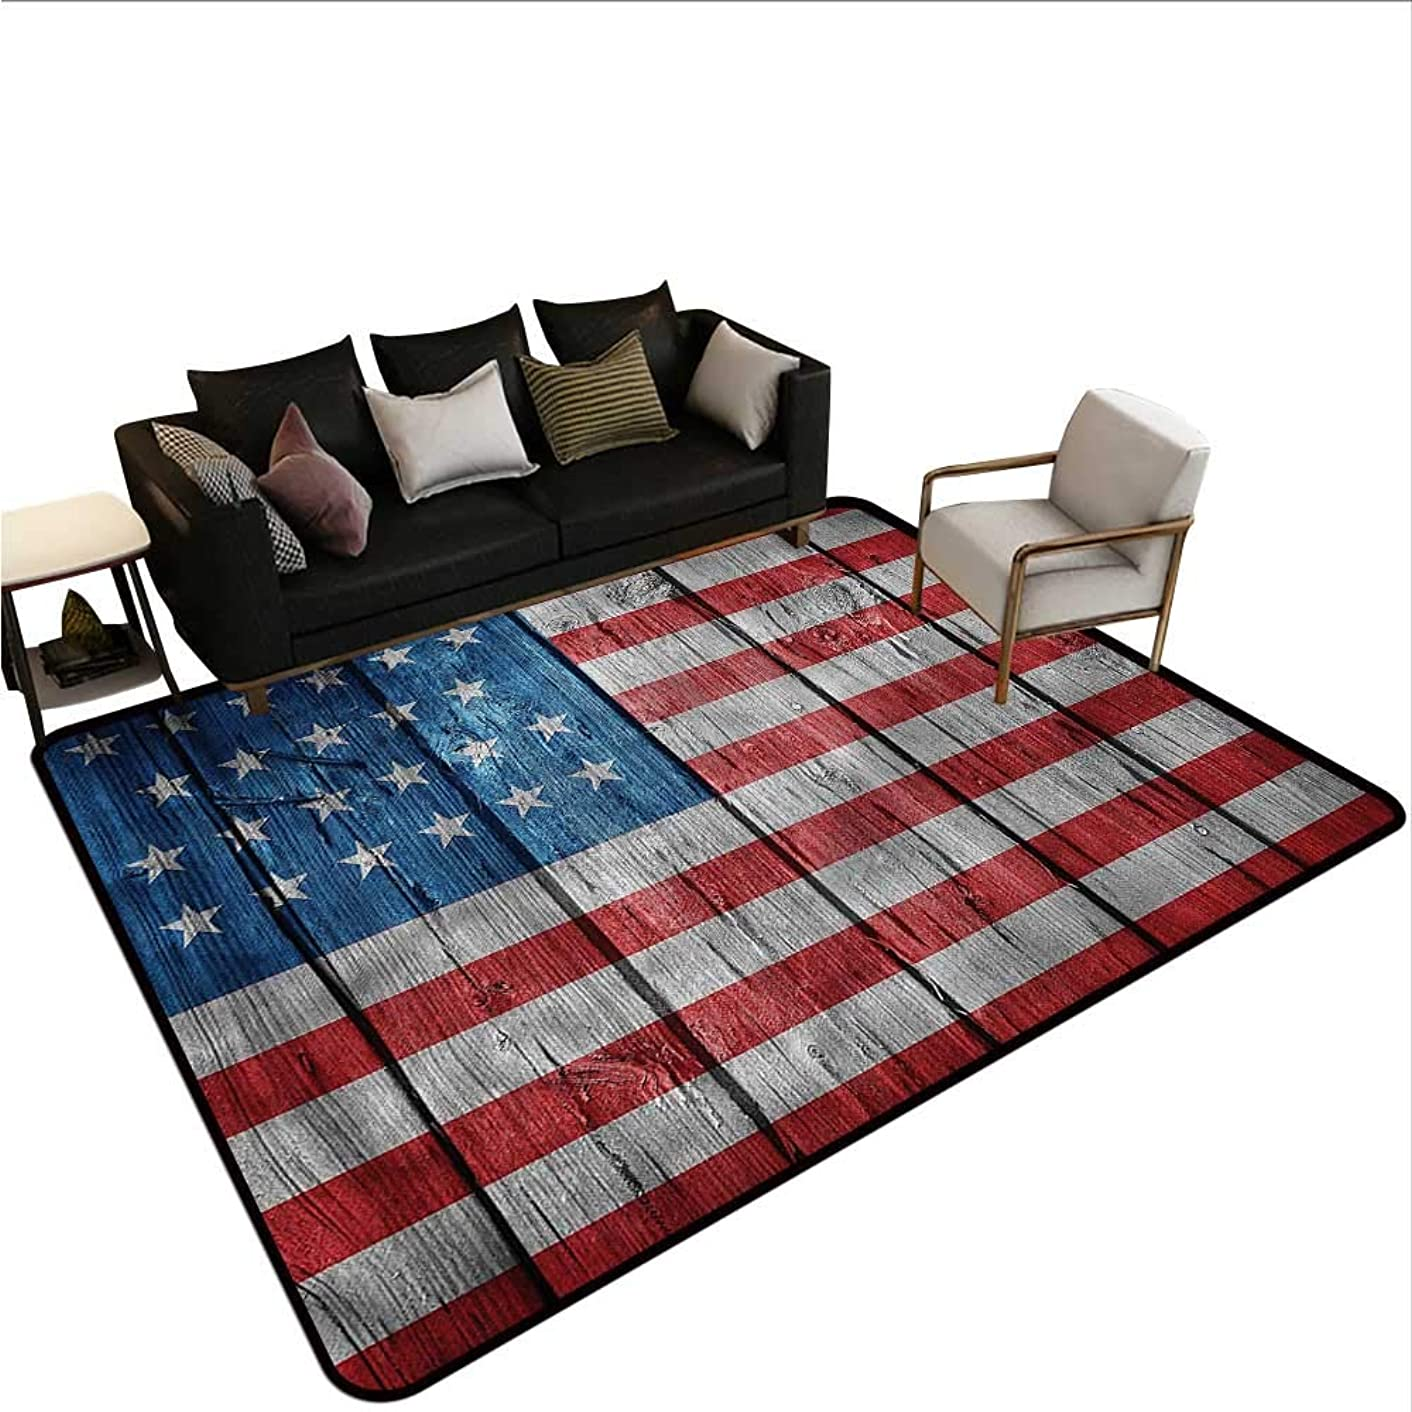 USA,Kids Bedroom Mats Decorative 24